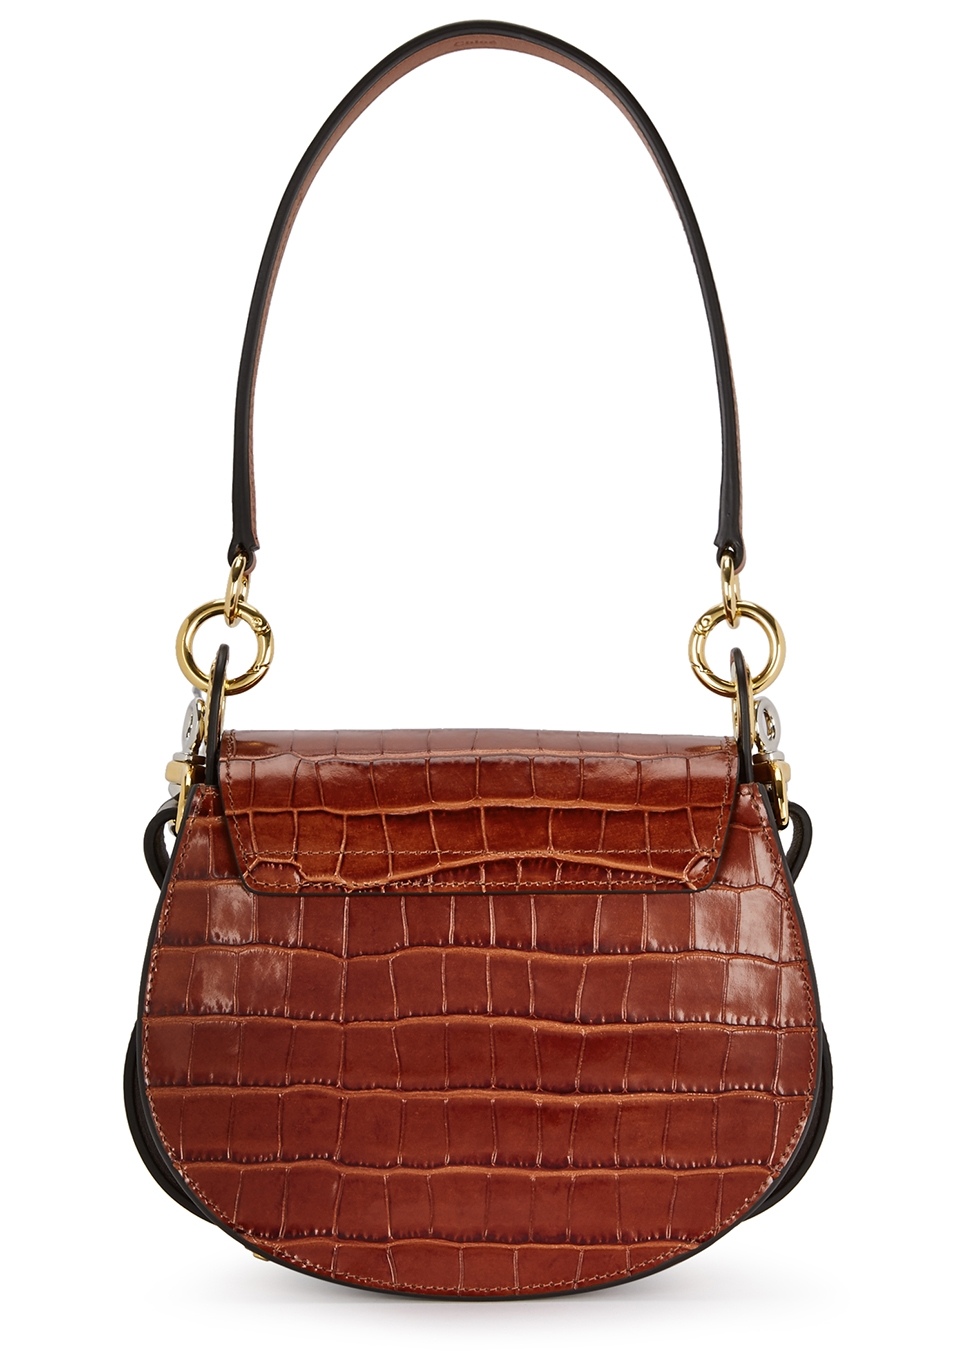 Tess small leather shoulder bag - Chloé